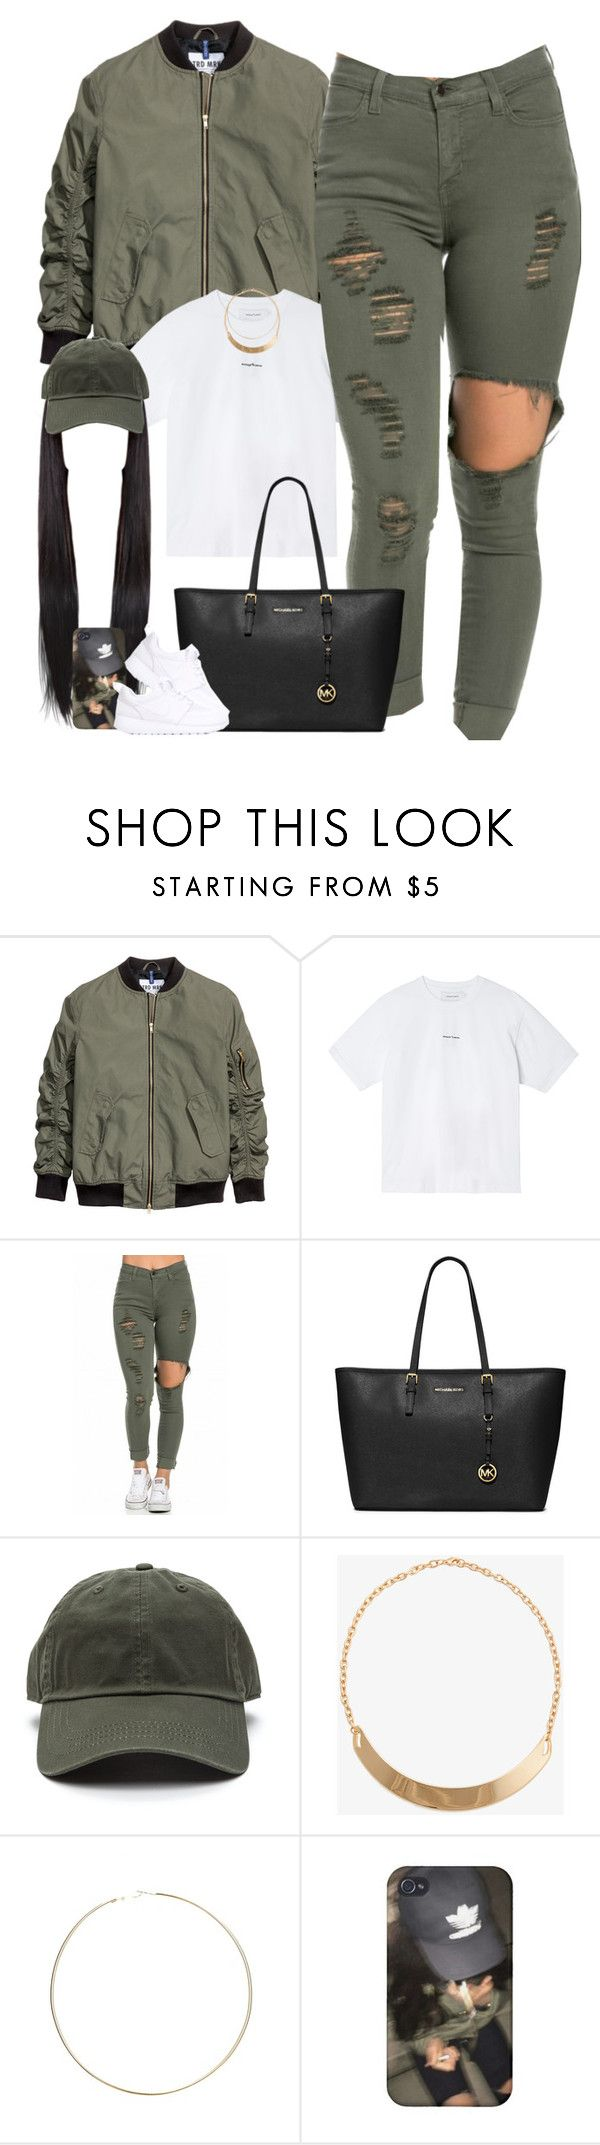 """Olive Green ♡"" by thatchickcrazy ❤ liked on Polyvore featuring Marques'Almeida, MICHAEL Michael Kors, Forever 21, ASOS and NIKE"